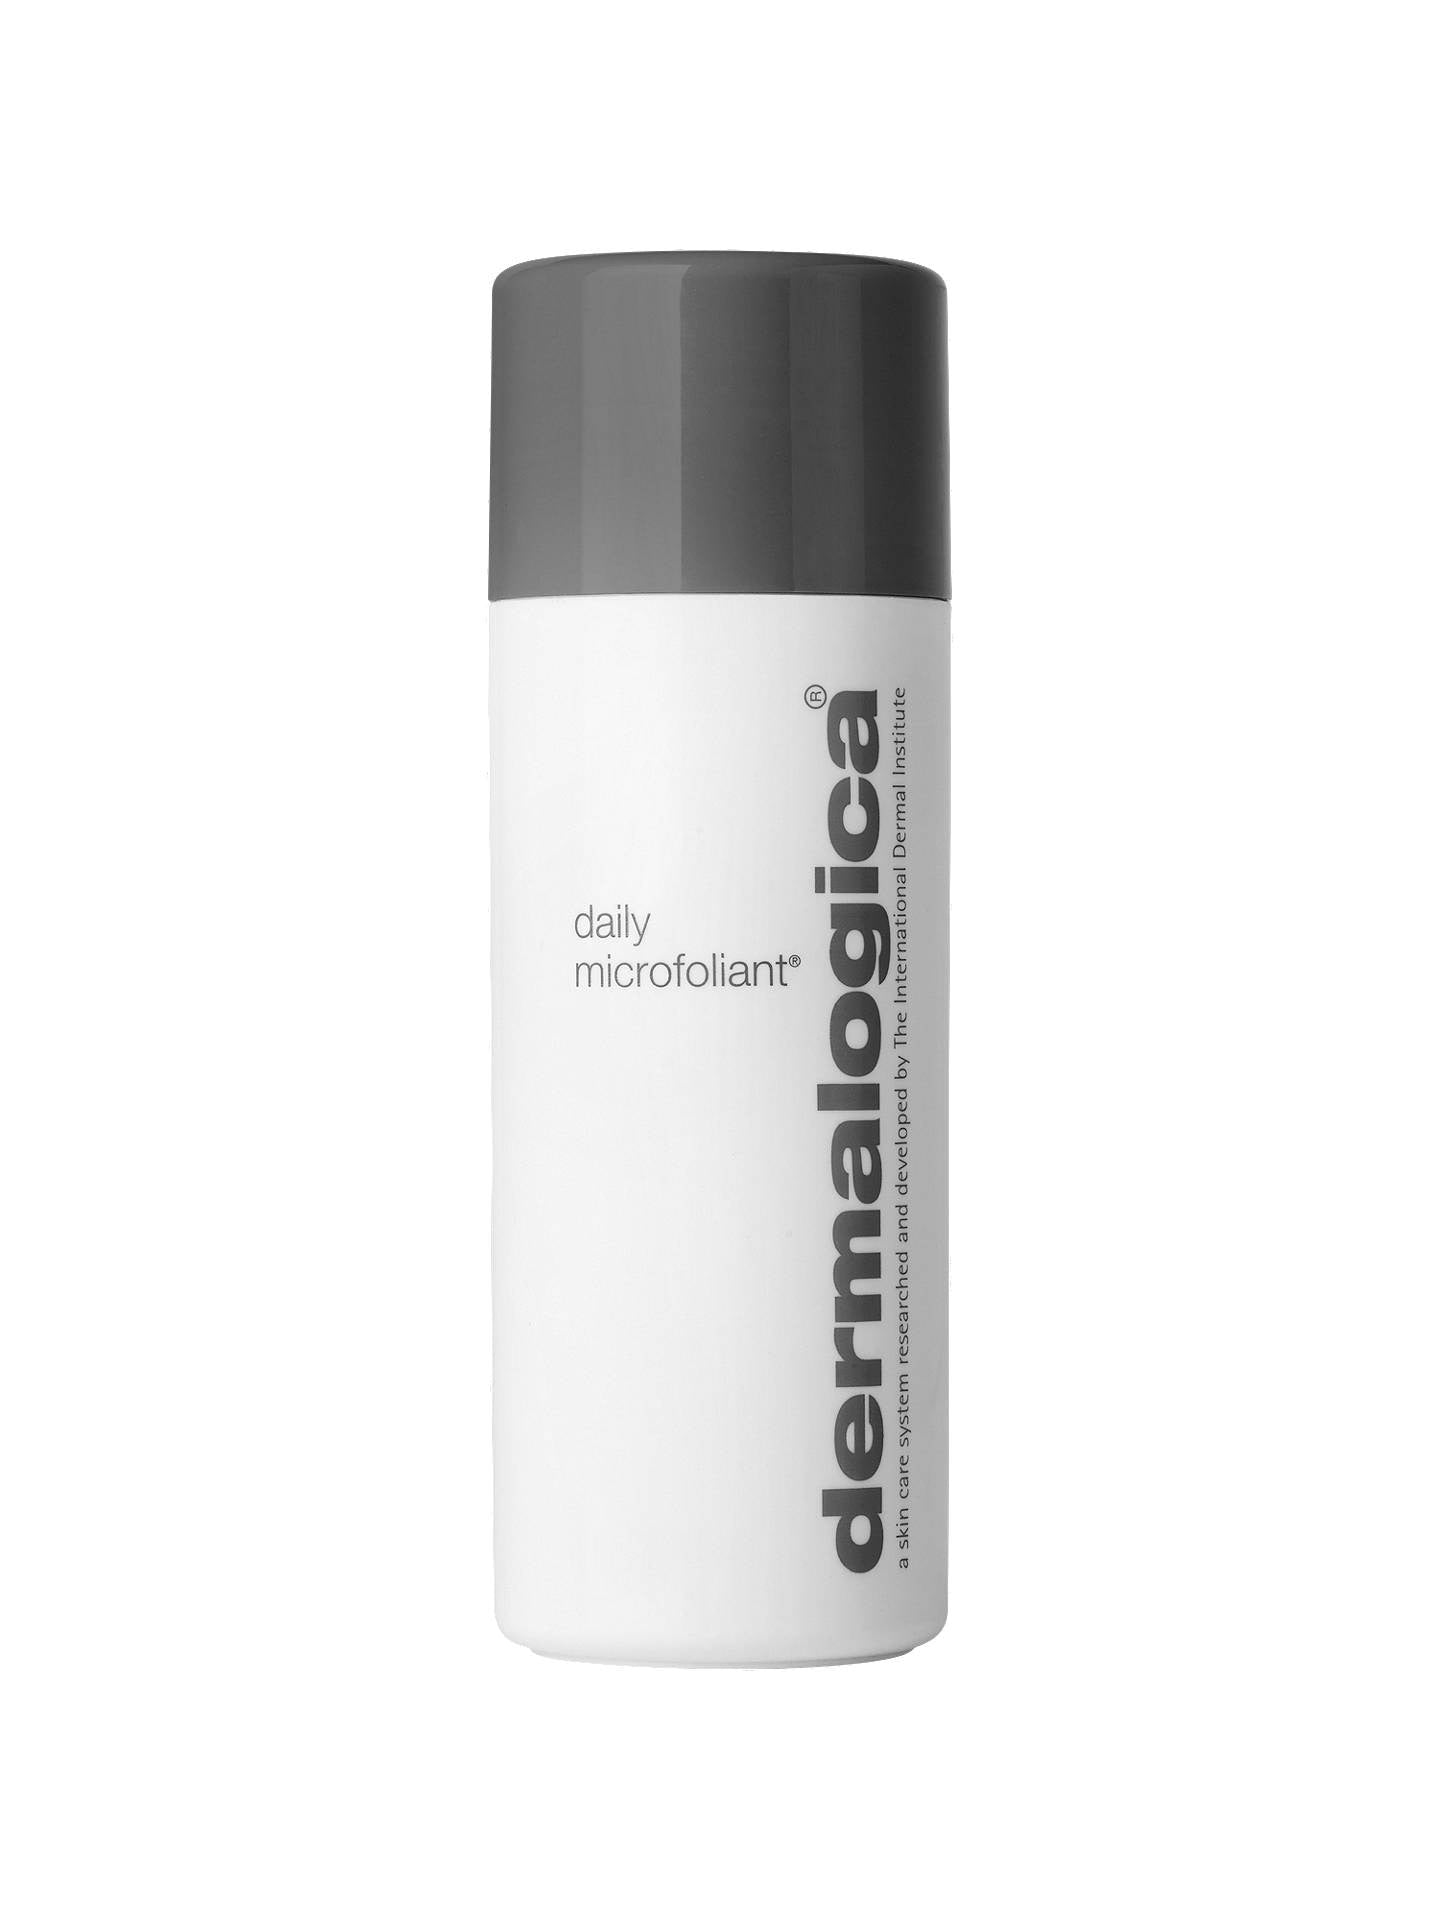 Daily Microfoliant, Dermalogica